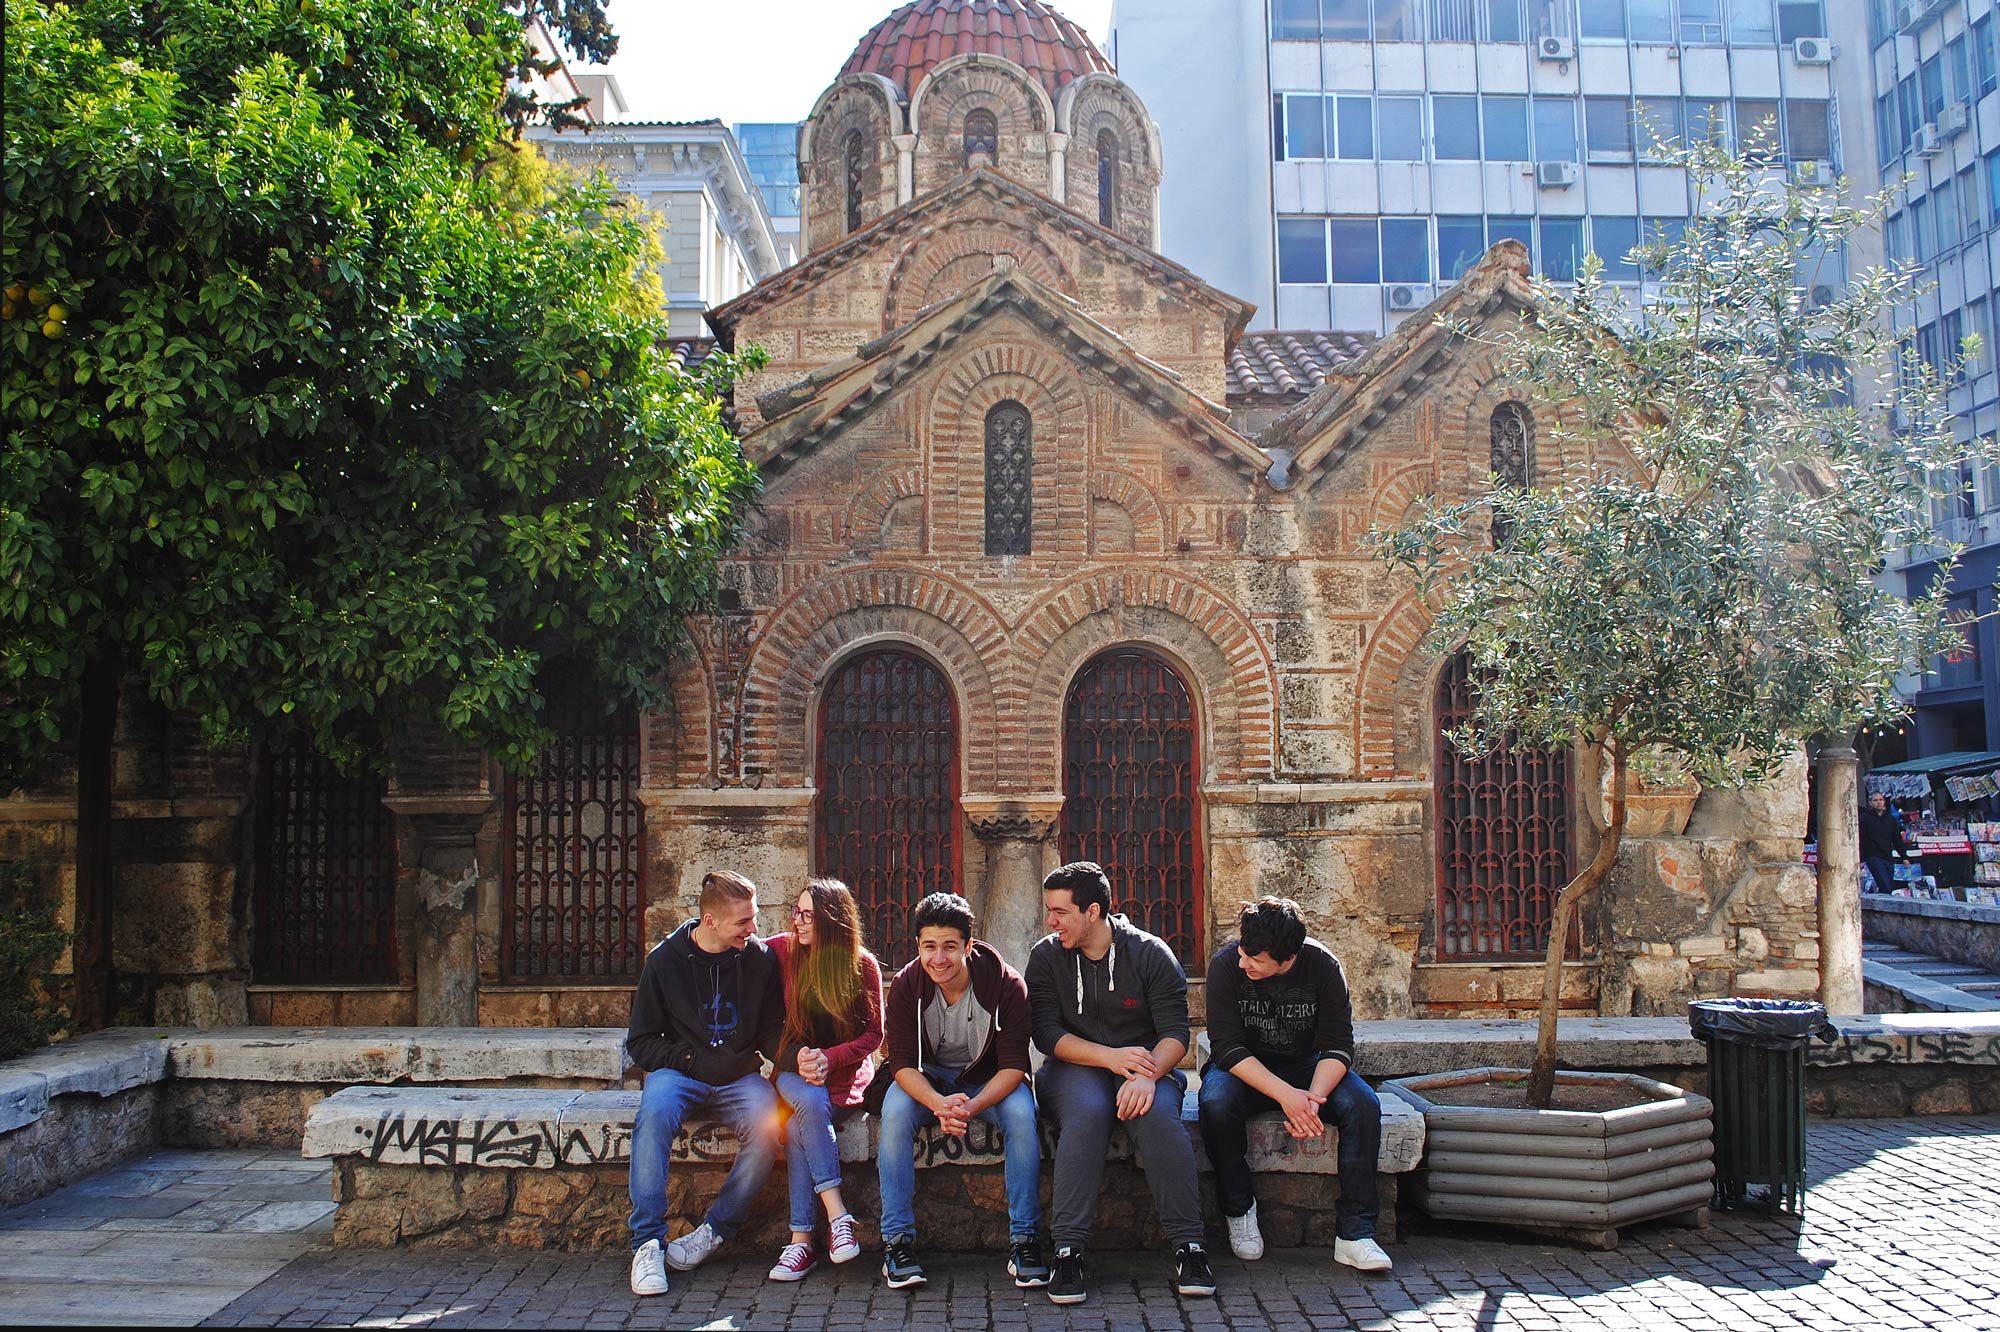 Greek youth gather outside a church in Athens. Secularization has caused more youth to spend their time outside the walls of the churches — despite religion playing a key factor in Greece's history and nationalism. (Jolene Latimer/GroundTruth)